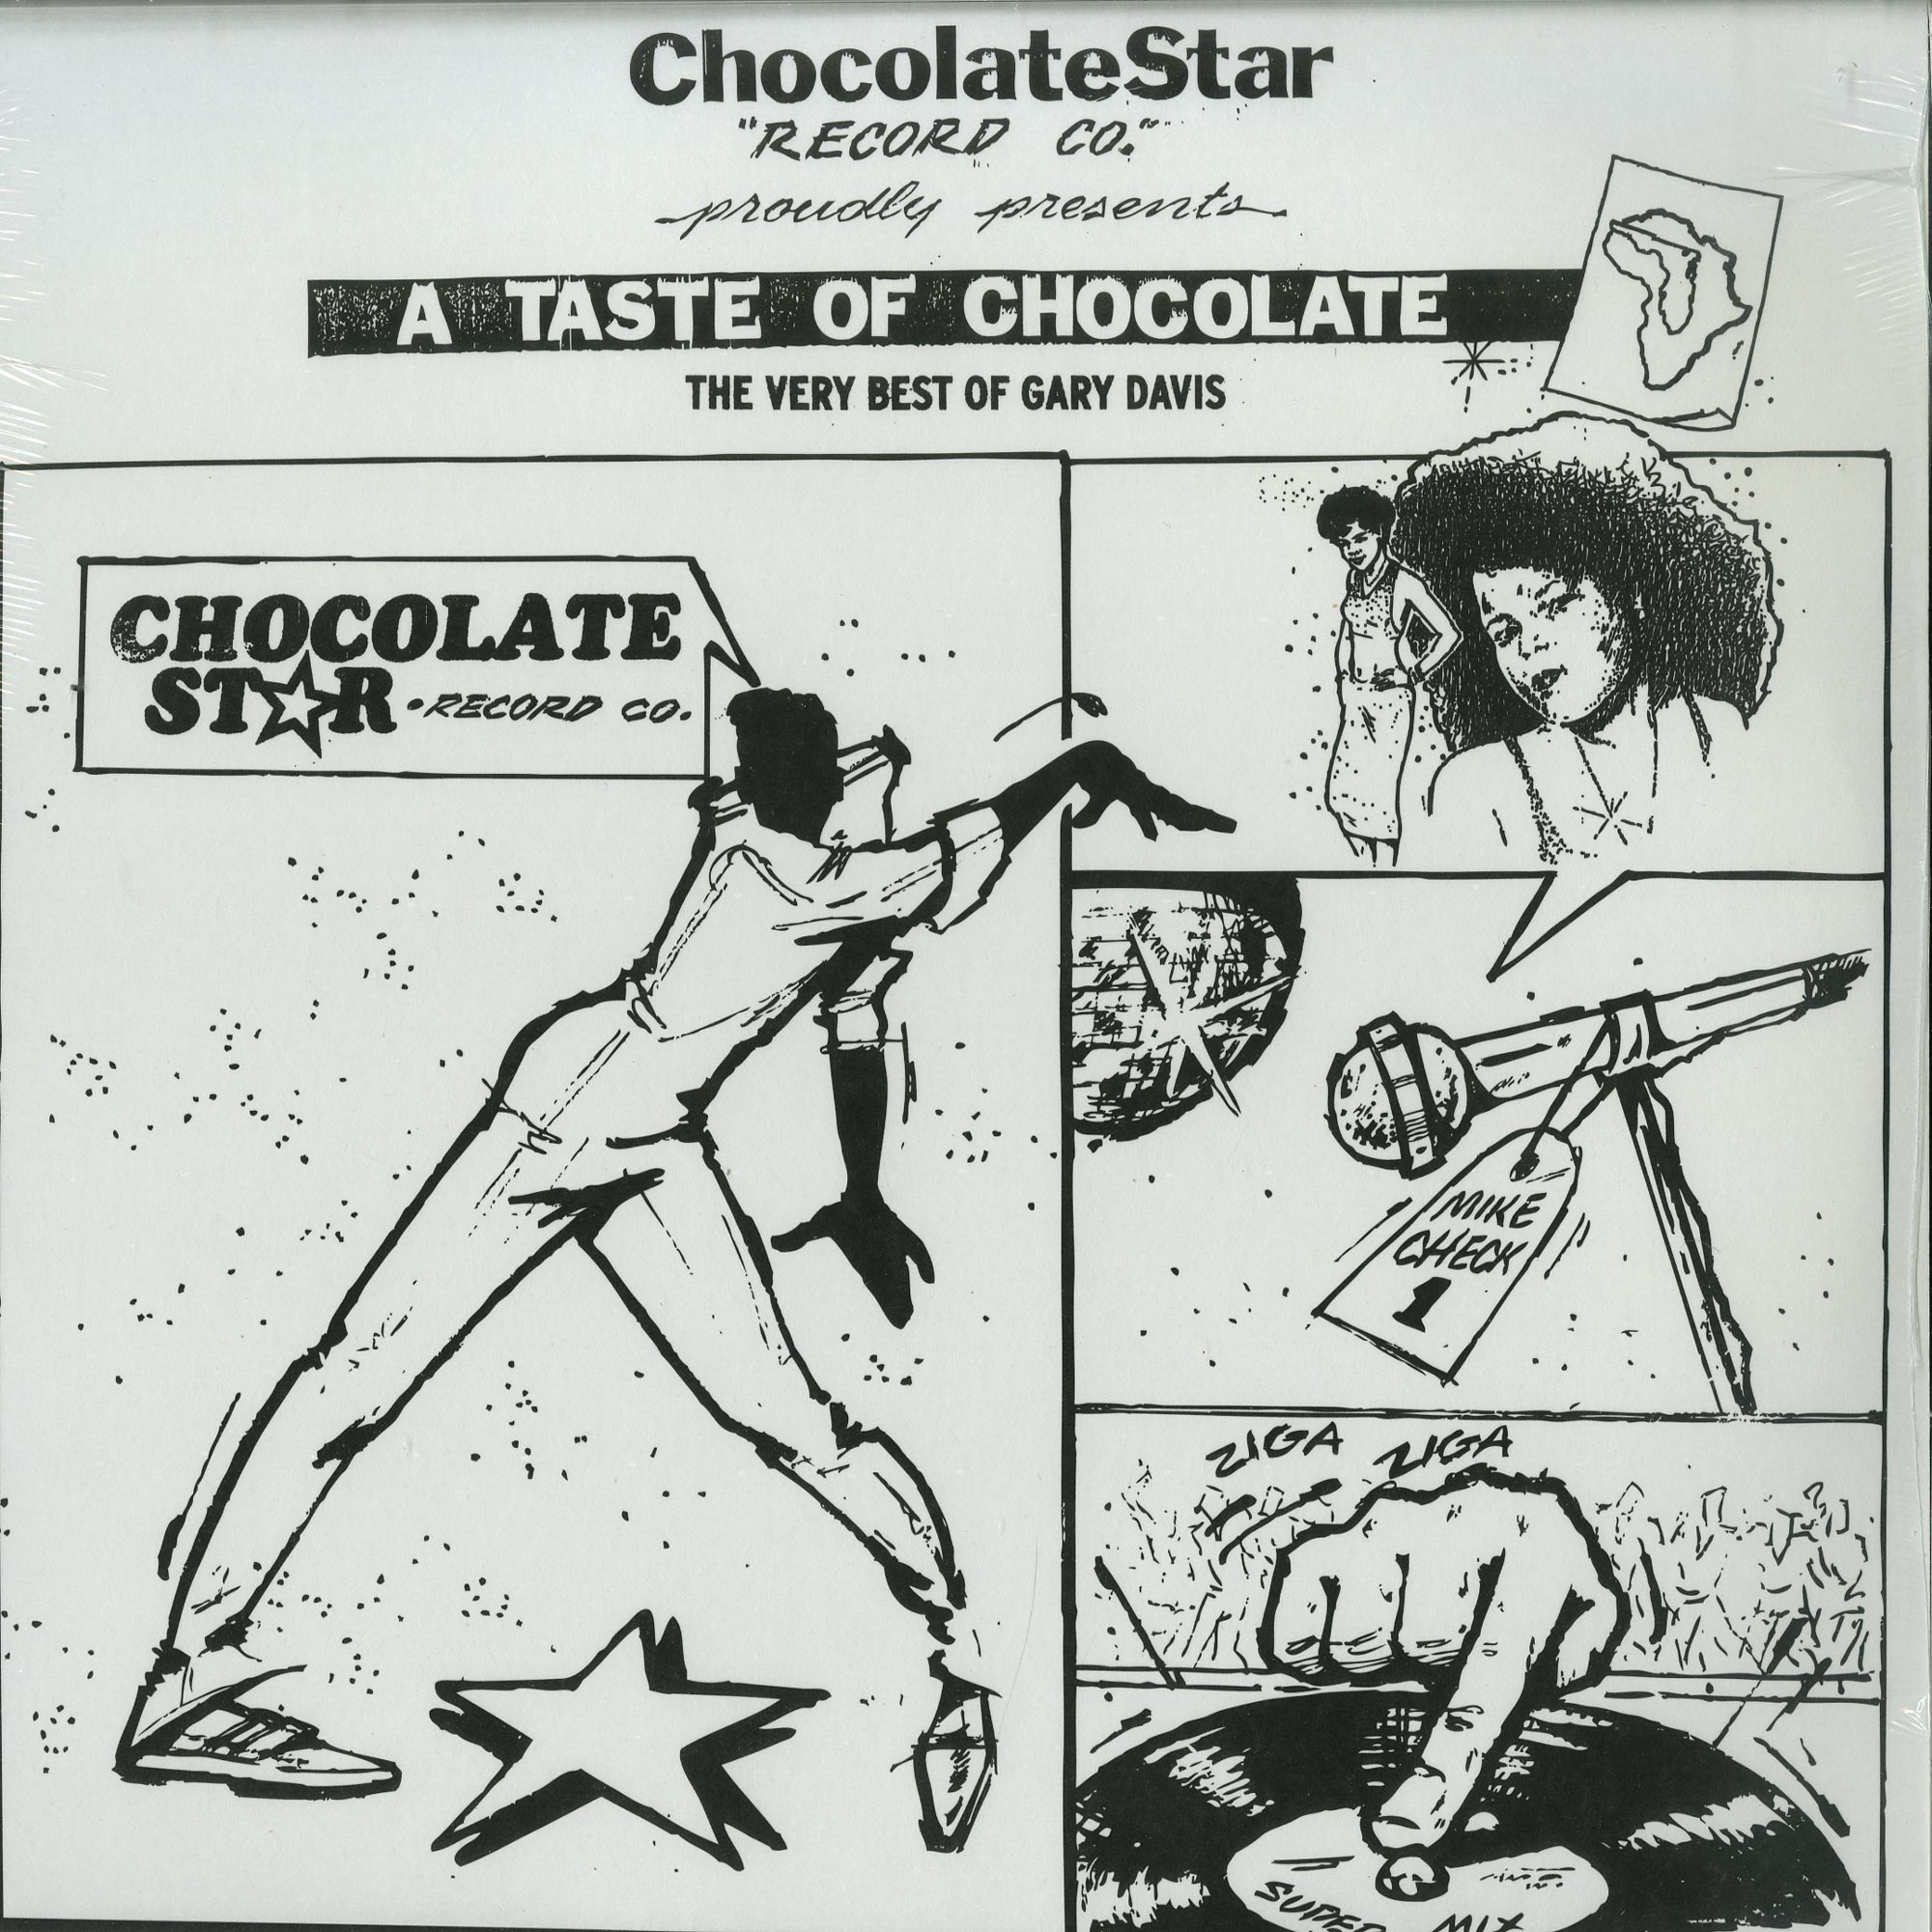 Gary Davis - A TASTE OF CHOCOLATE - THE VERY BEST OF GARY DAVIS